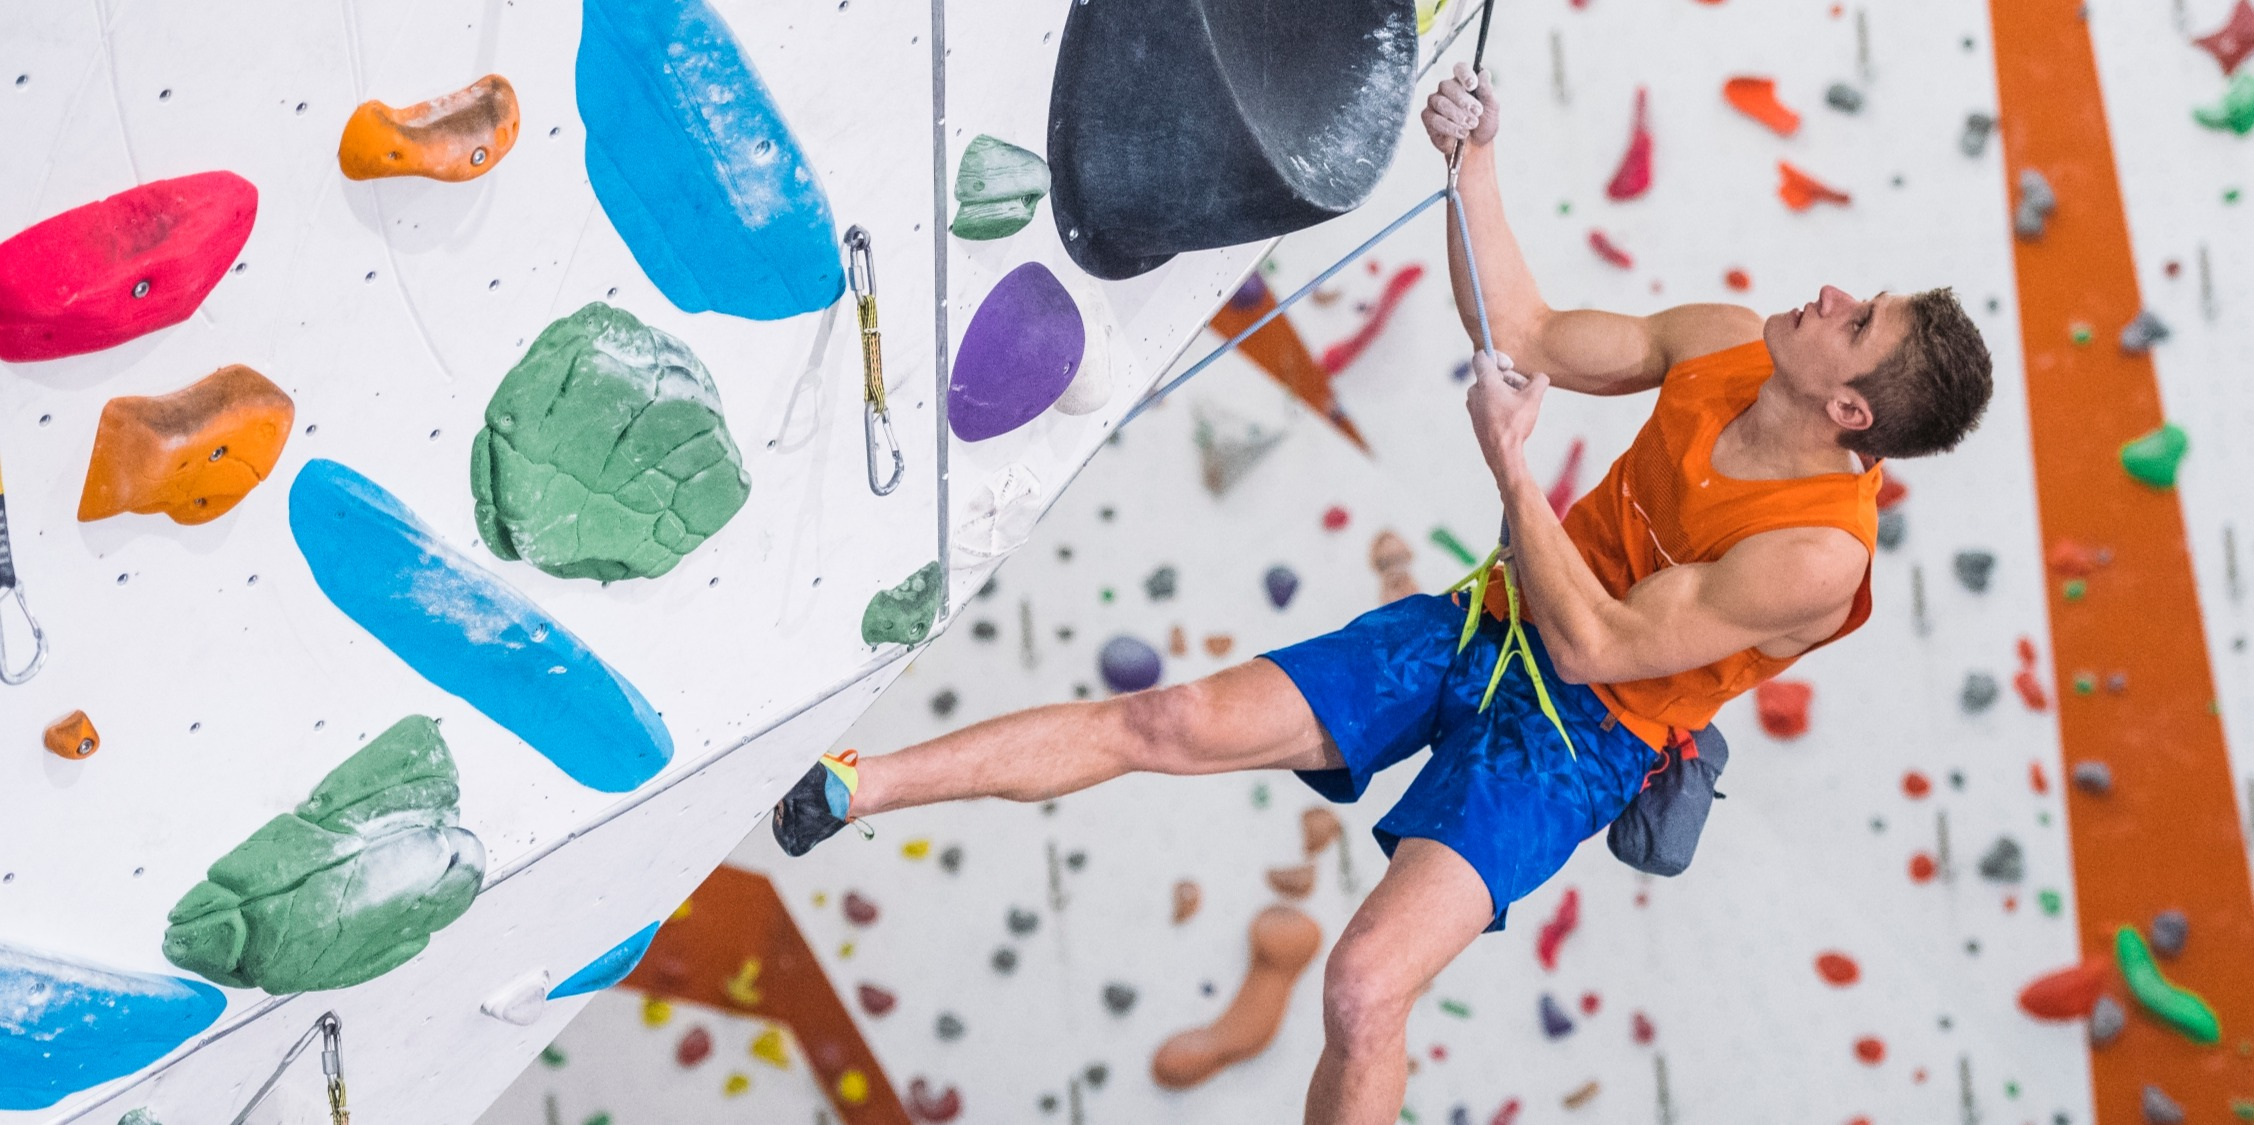 Climbing For Beginners: Where Can I Practice Climbing?